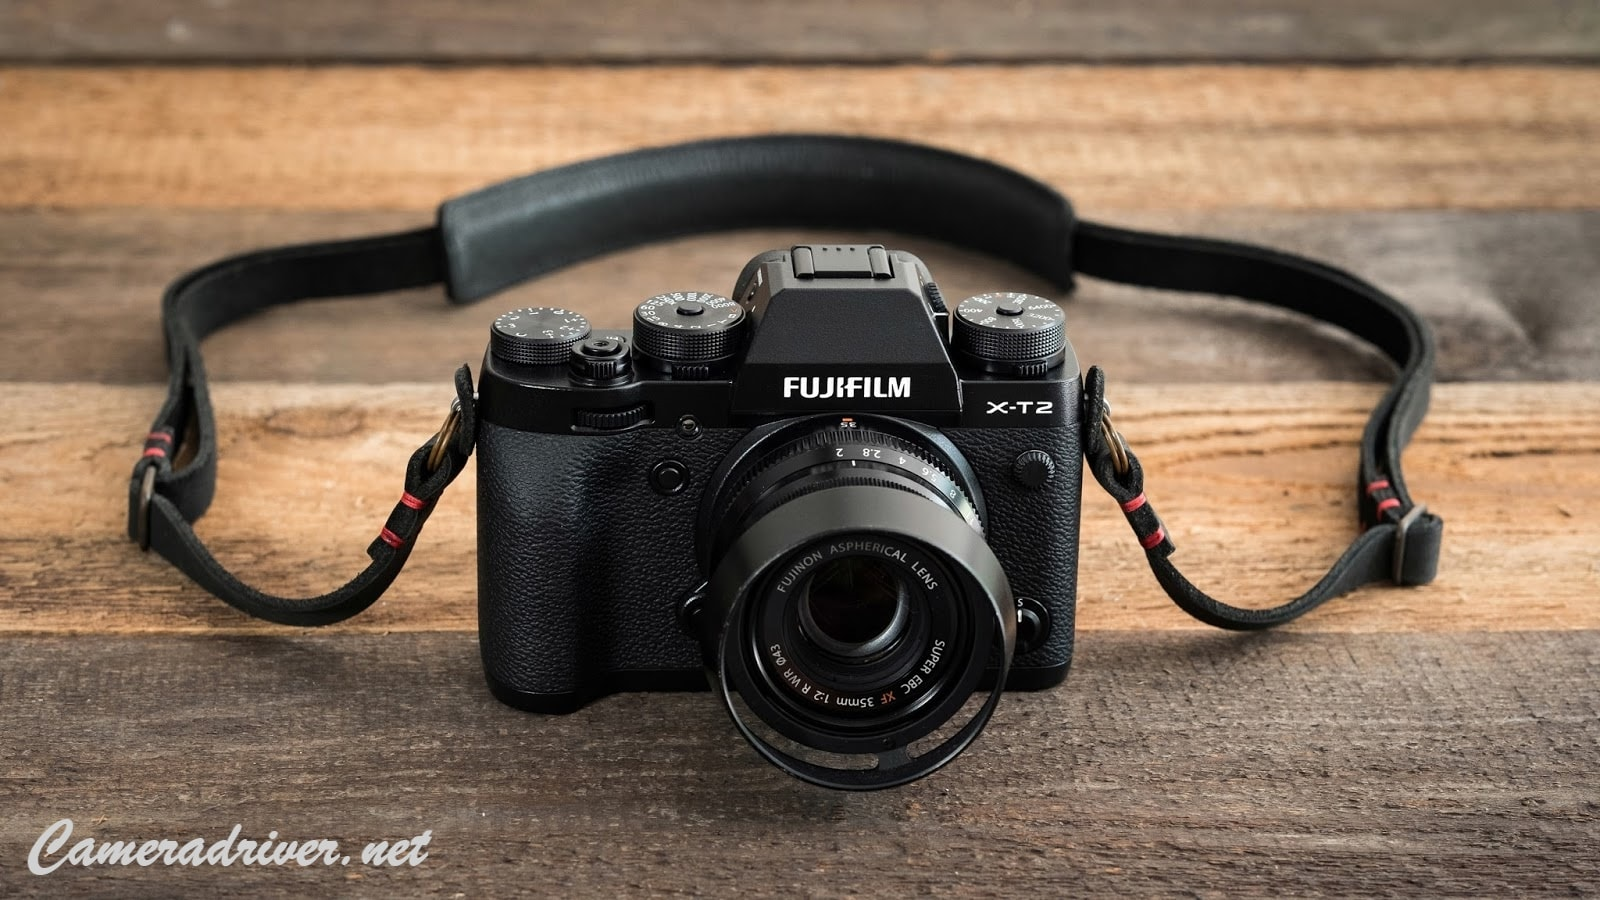 Fujifilm X-T2 Firmware Update Version 3.00